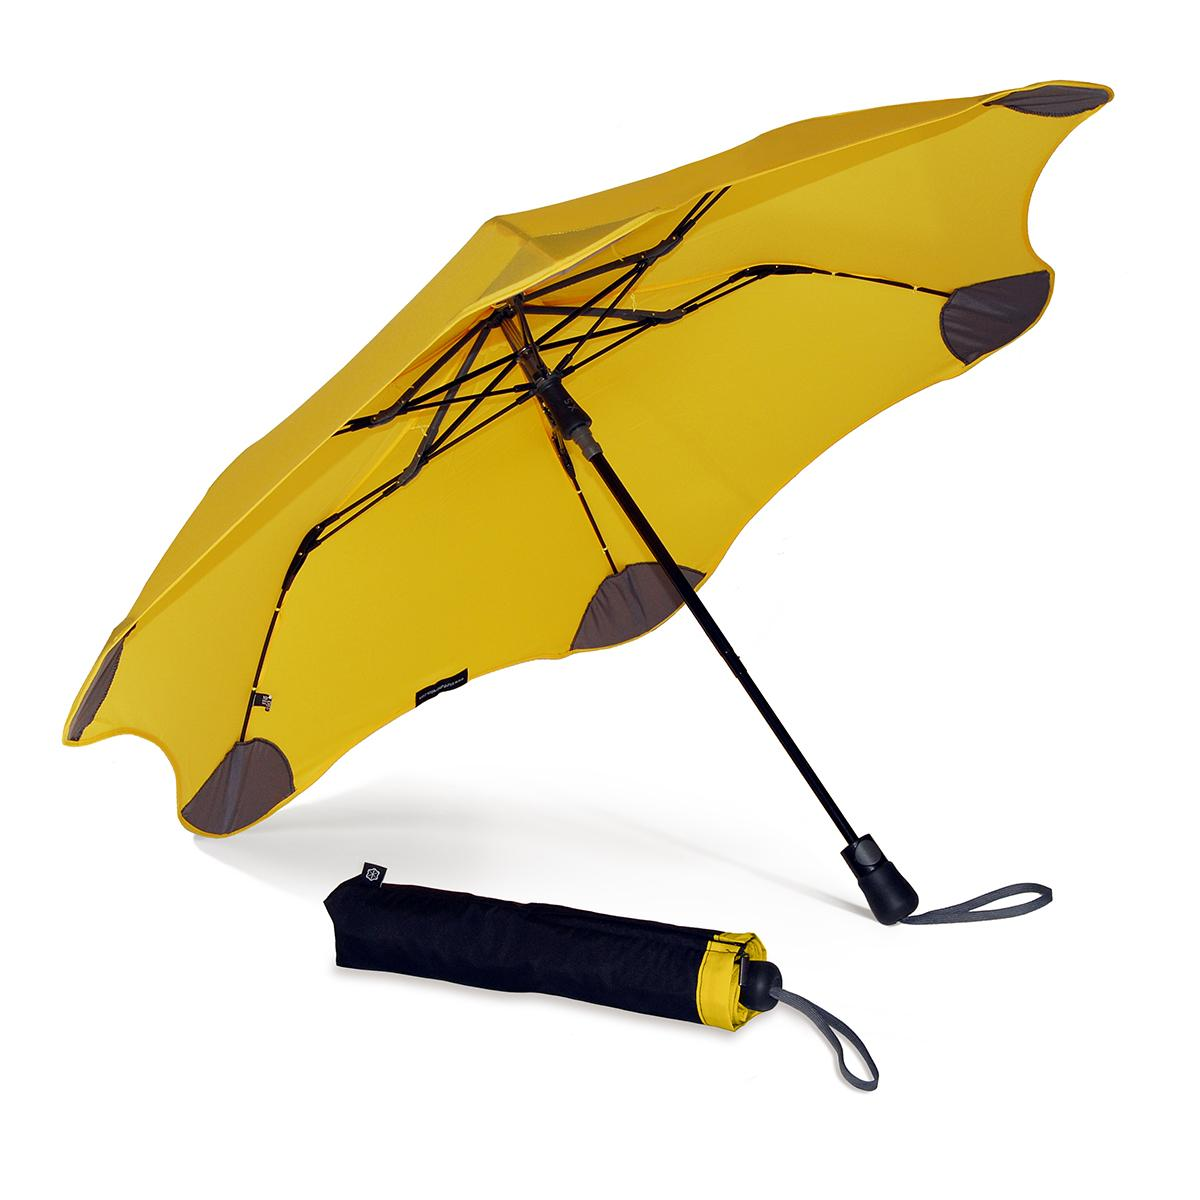 blunt yellow umbrella